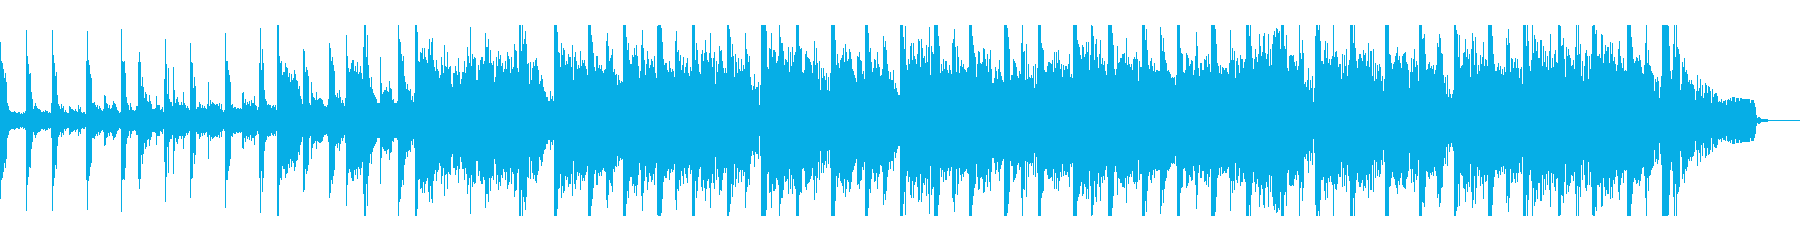 EDM Podcast Opener's reproduced waveform